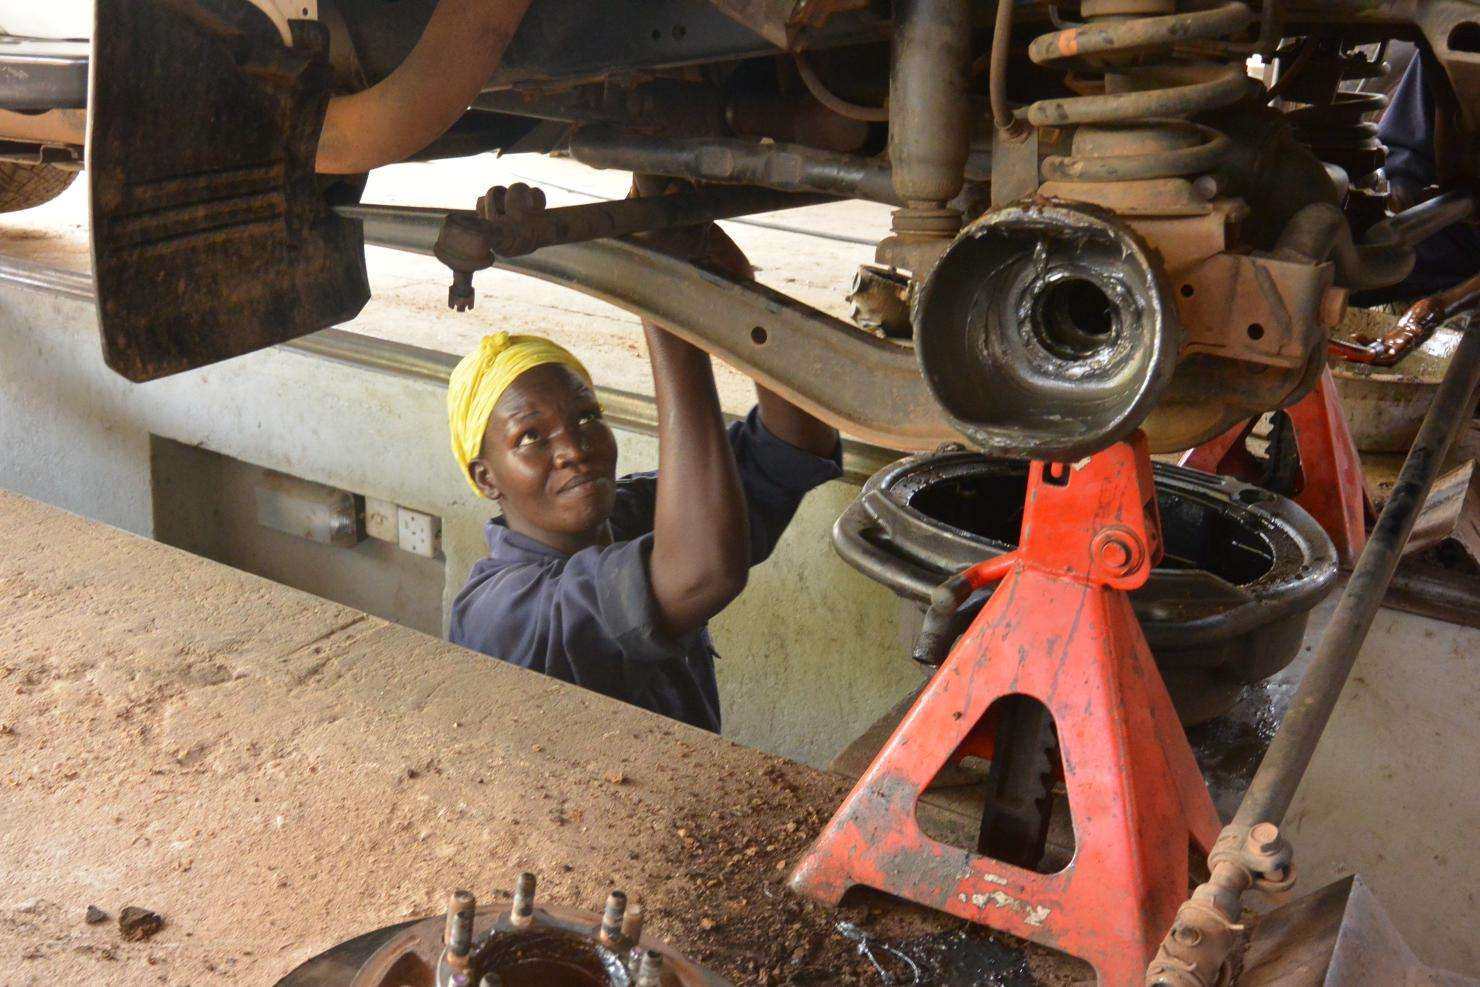 Poni Betty works on the underside of a vehicle at the MSF workshop in Juba, South Sudan.